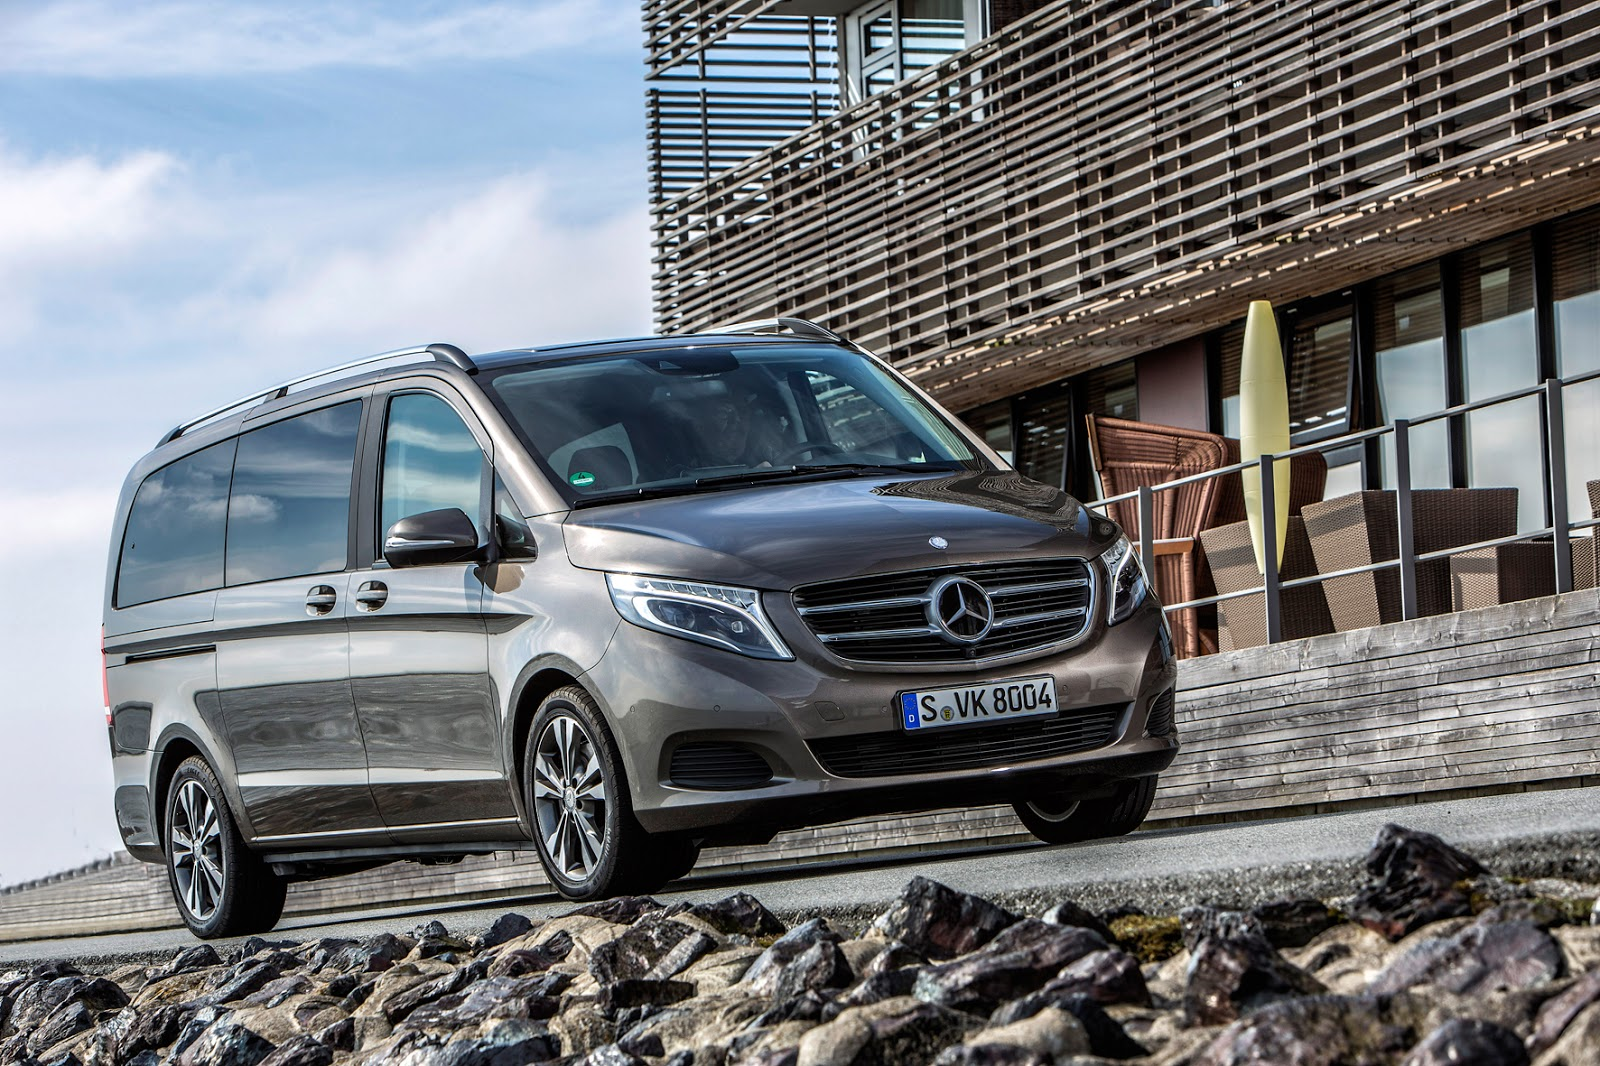 mercedes benz v class the ultimate luxury family car maison chaplin. Cars Review. Best American Auto & Cars Review